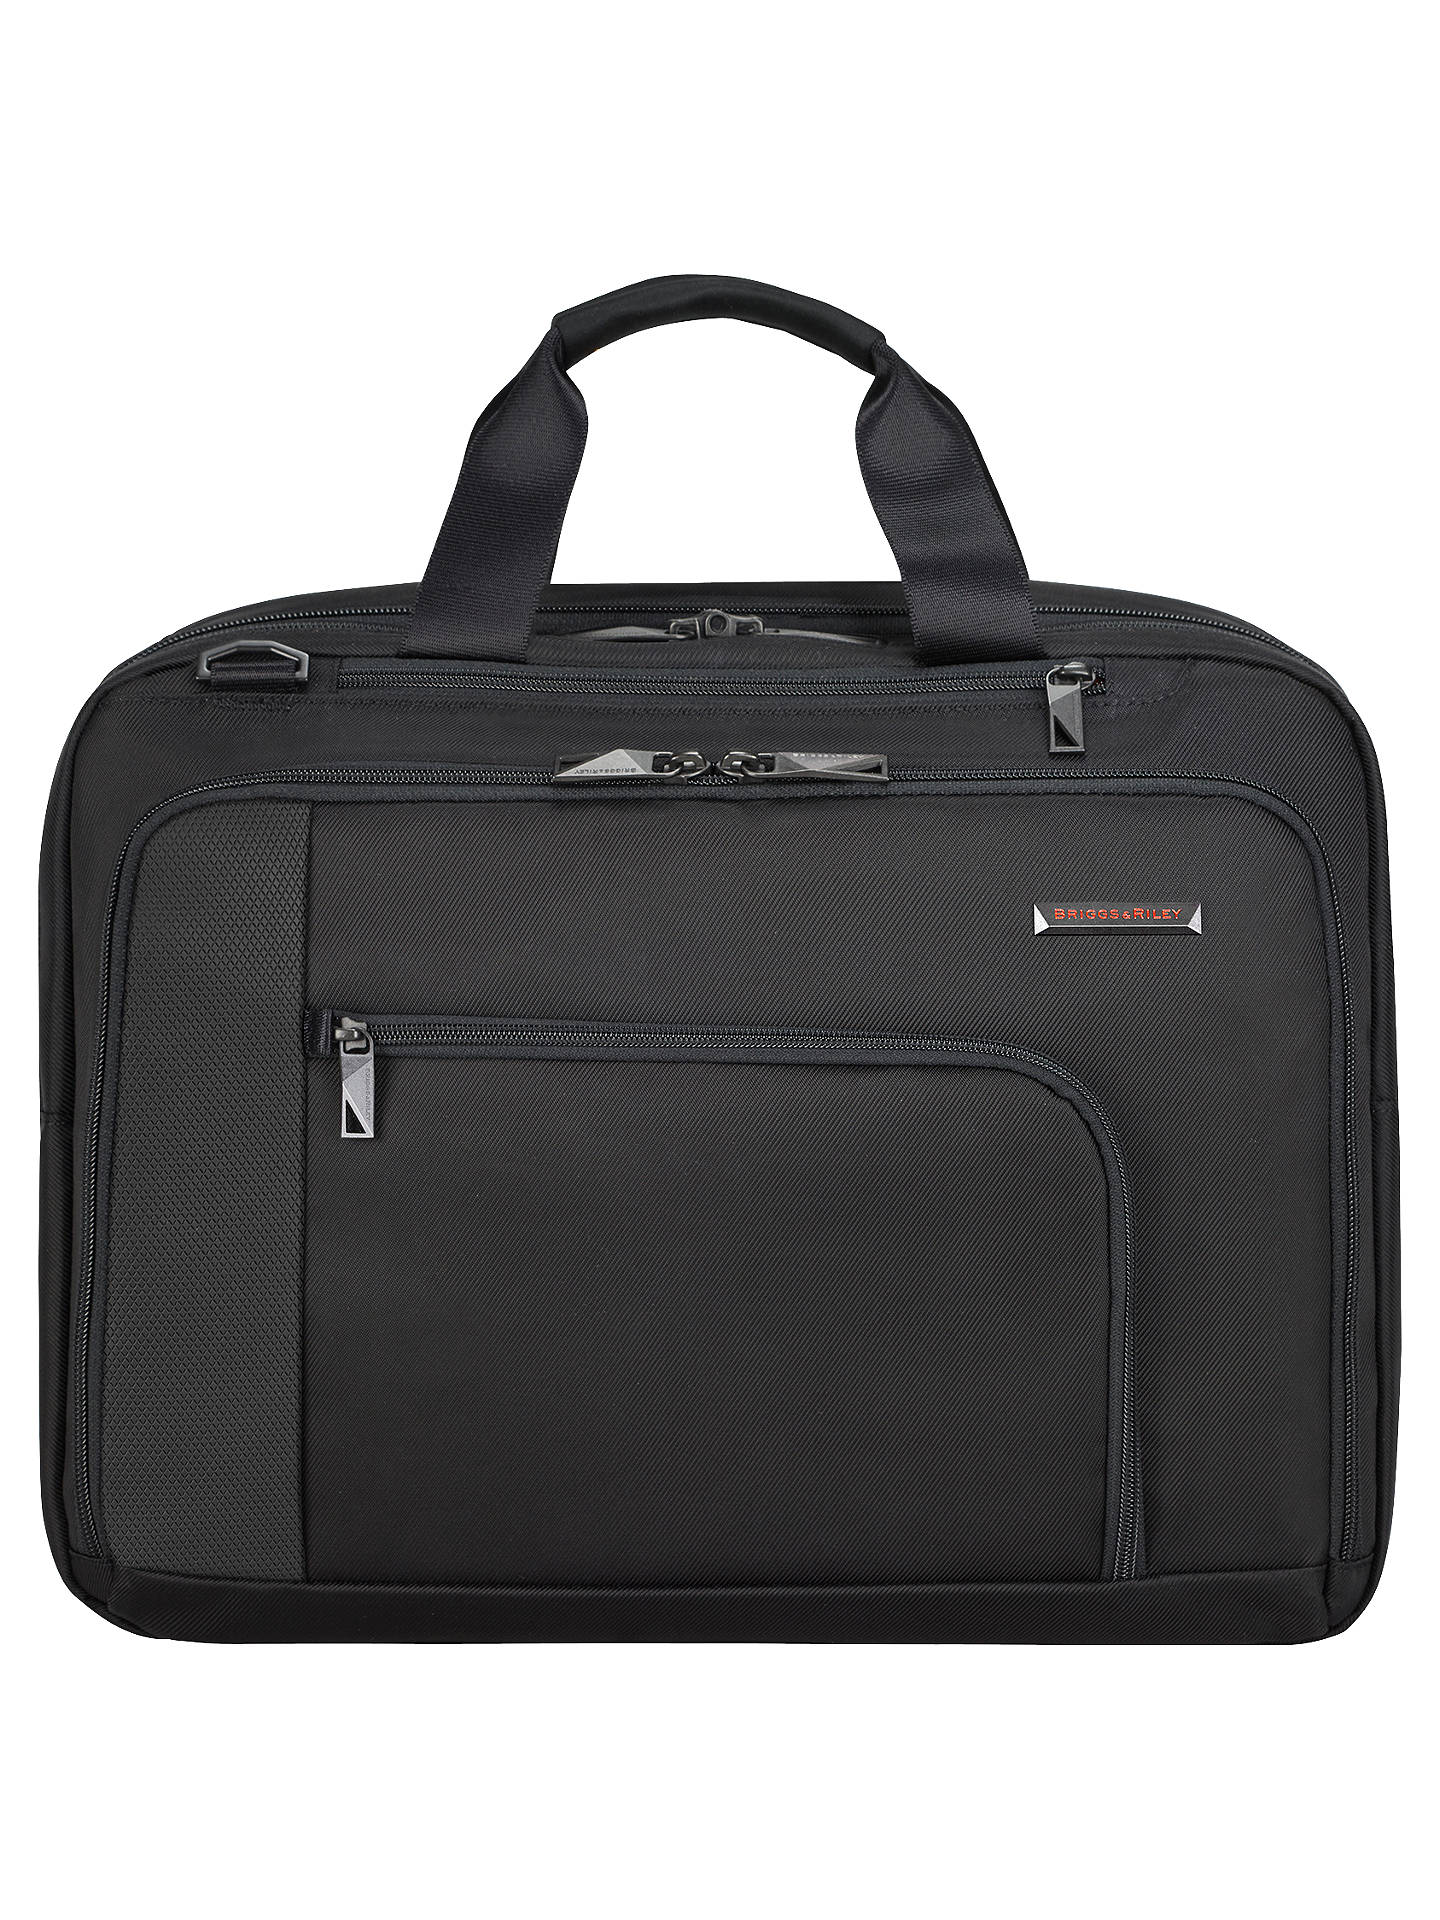 BuyBriggs & Riley Verb Adapt Briefcase, Black Online at johnlewis.com